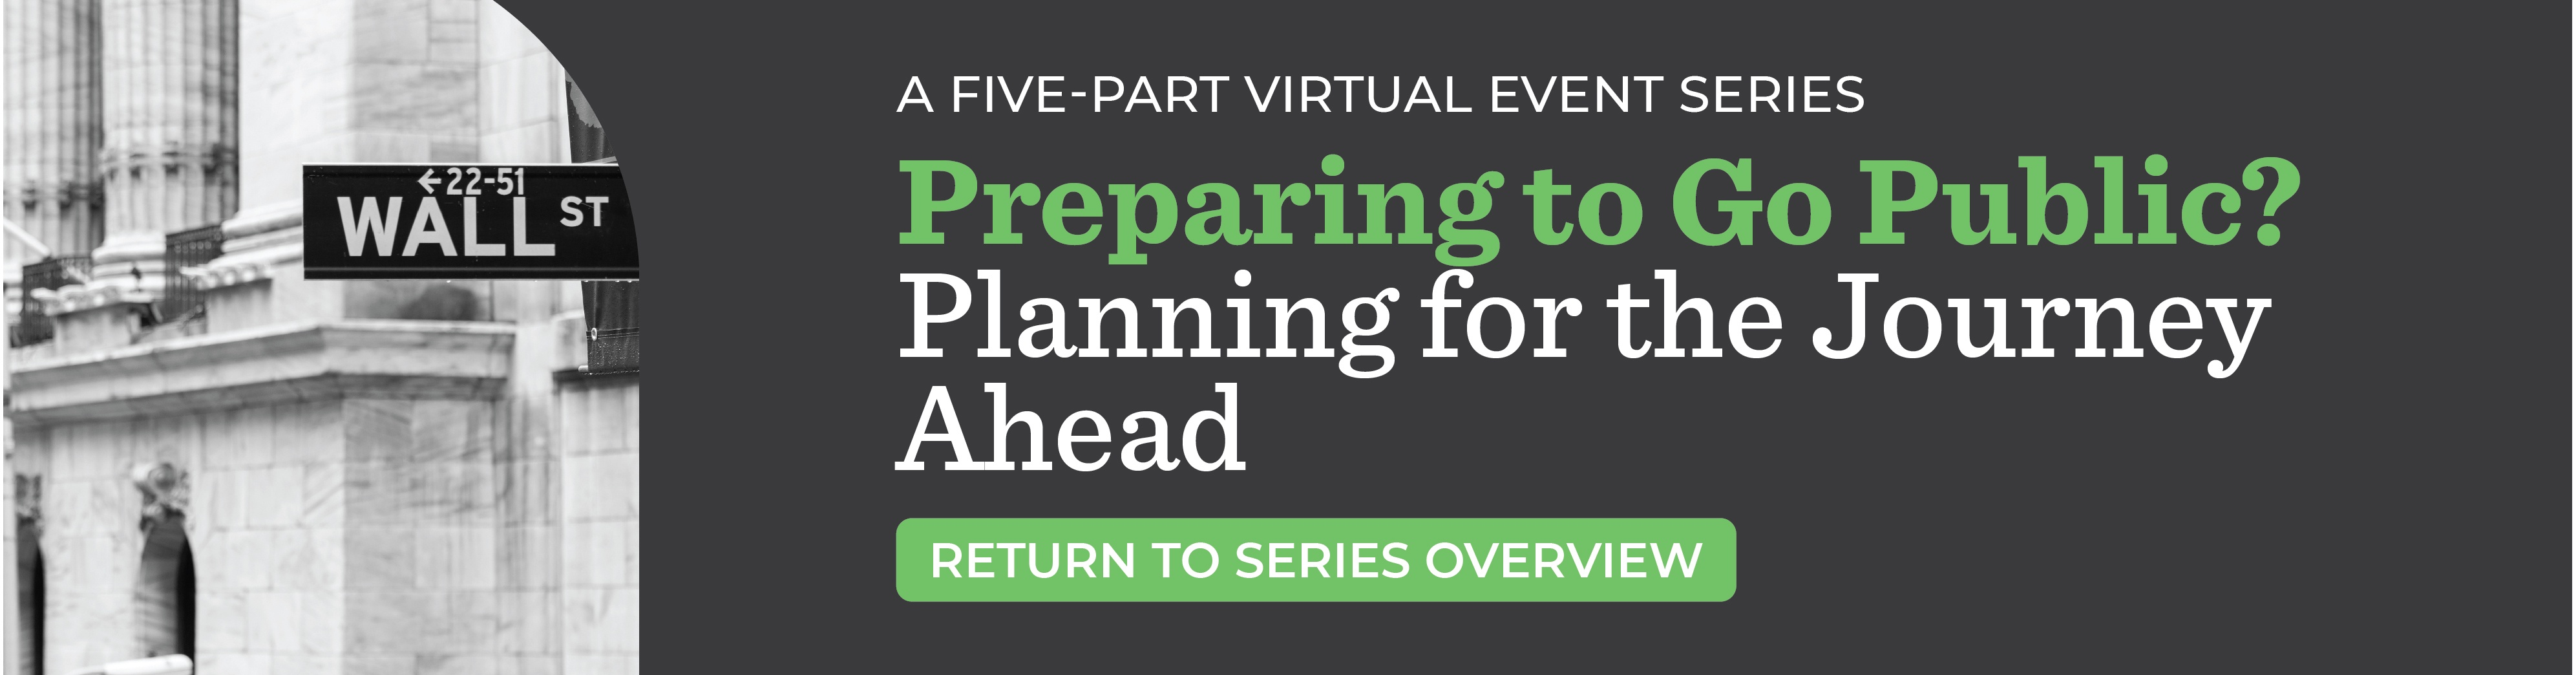 Preparing to Go Public? Planning for the Journey Ahead